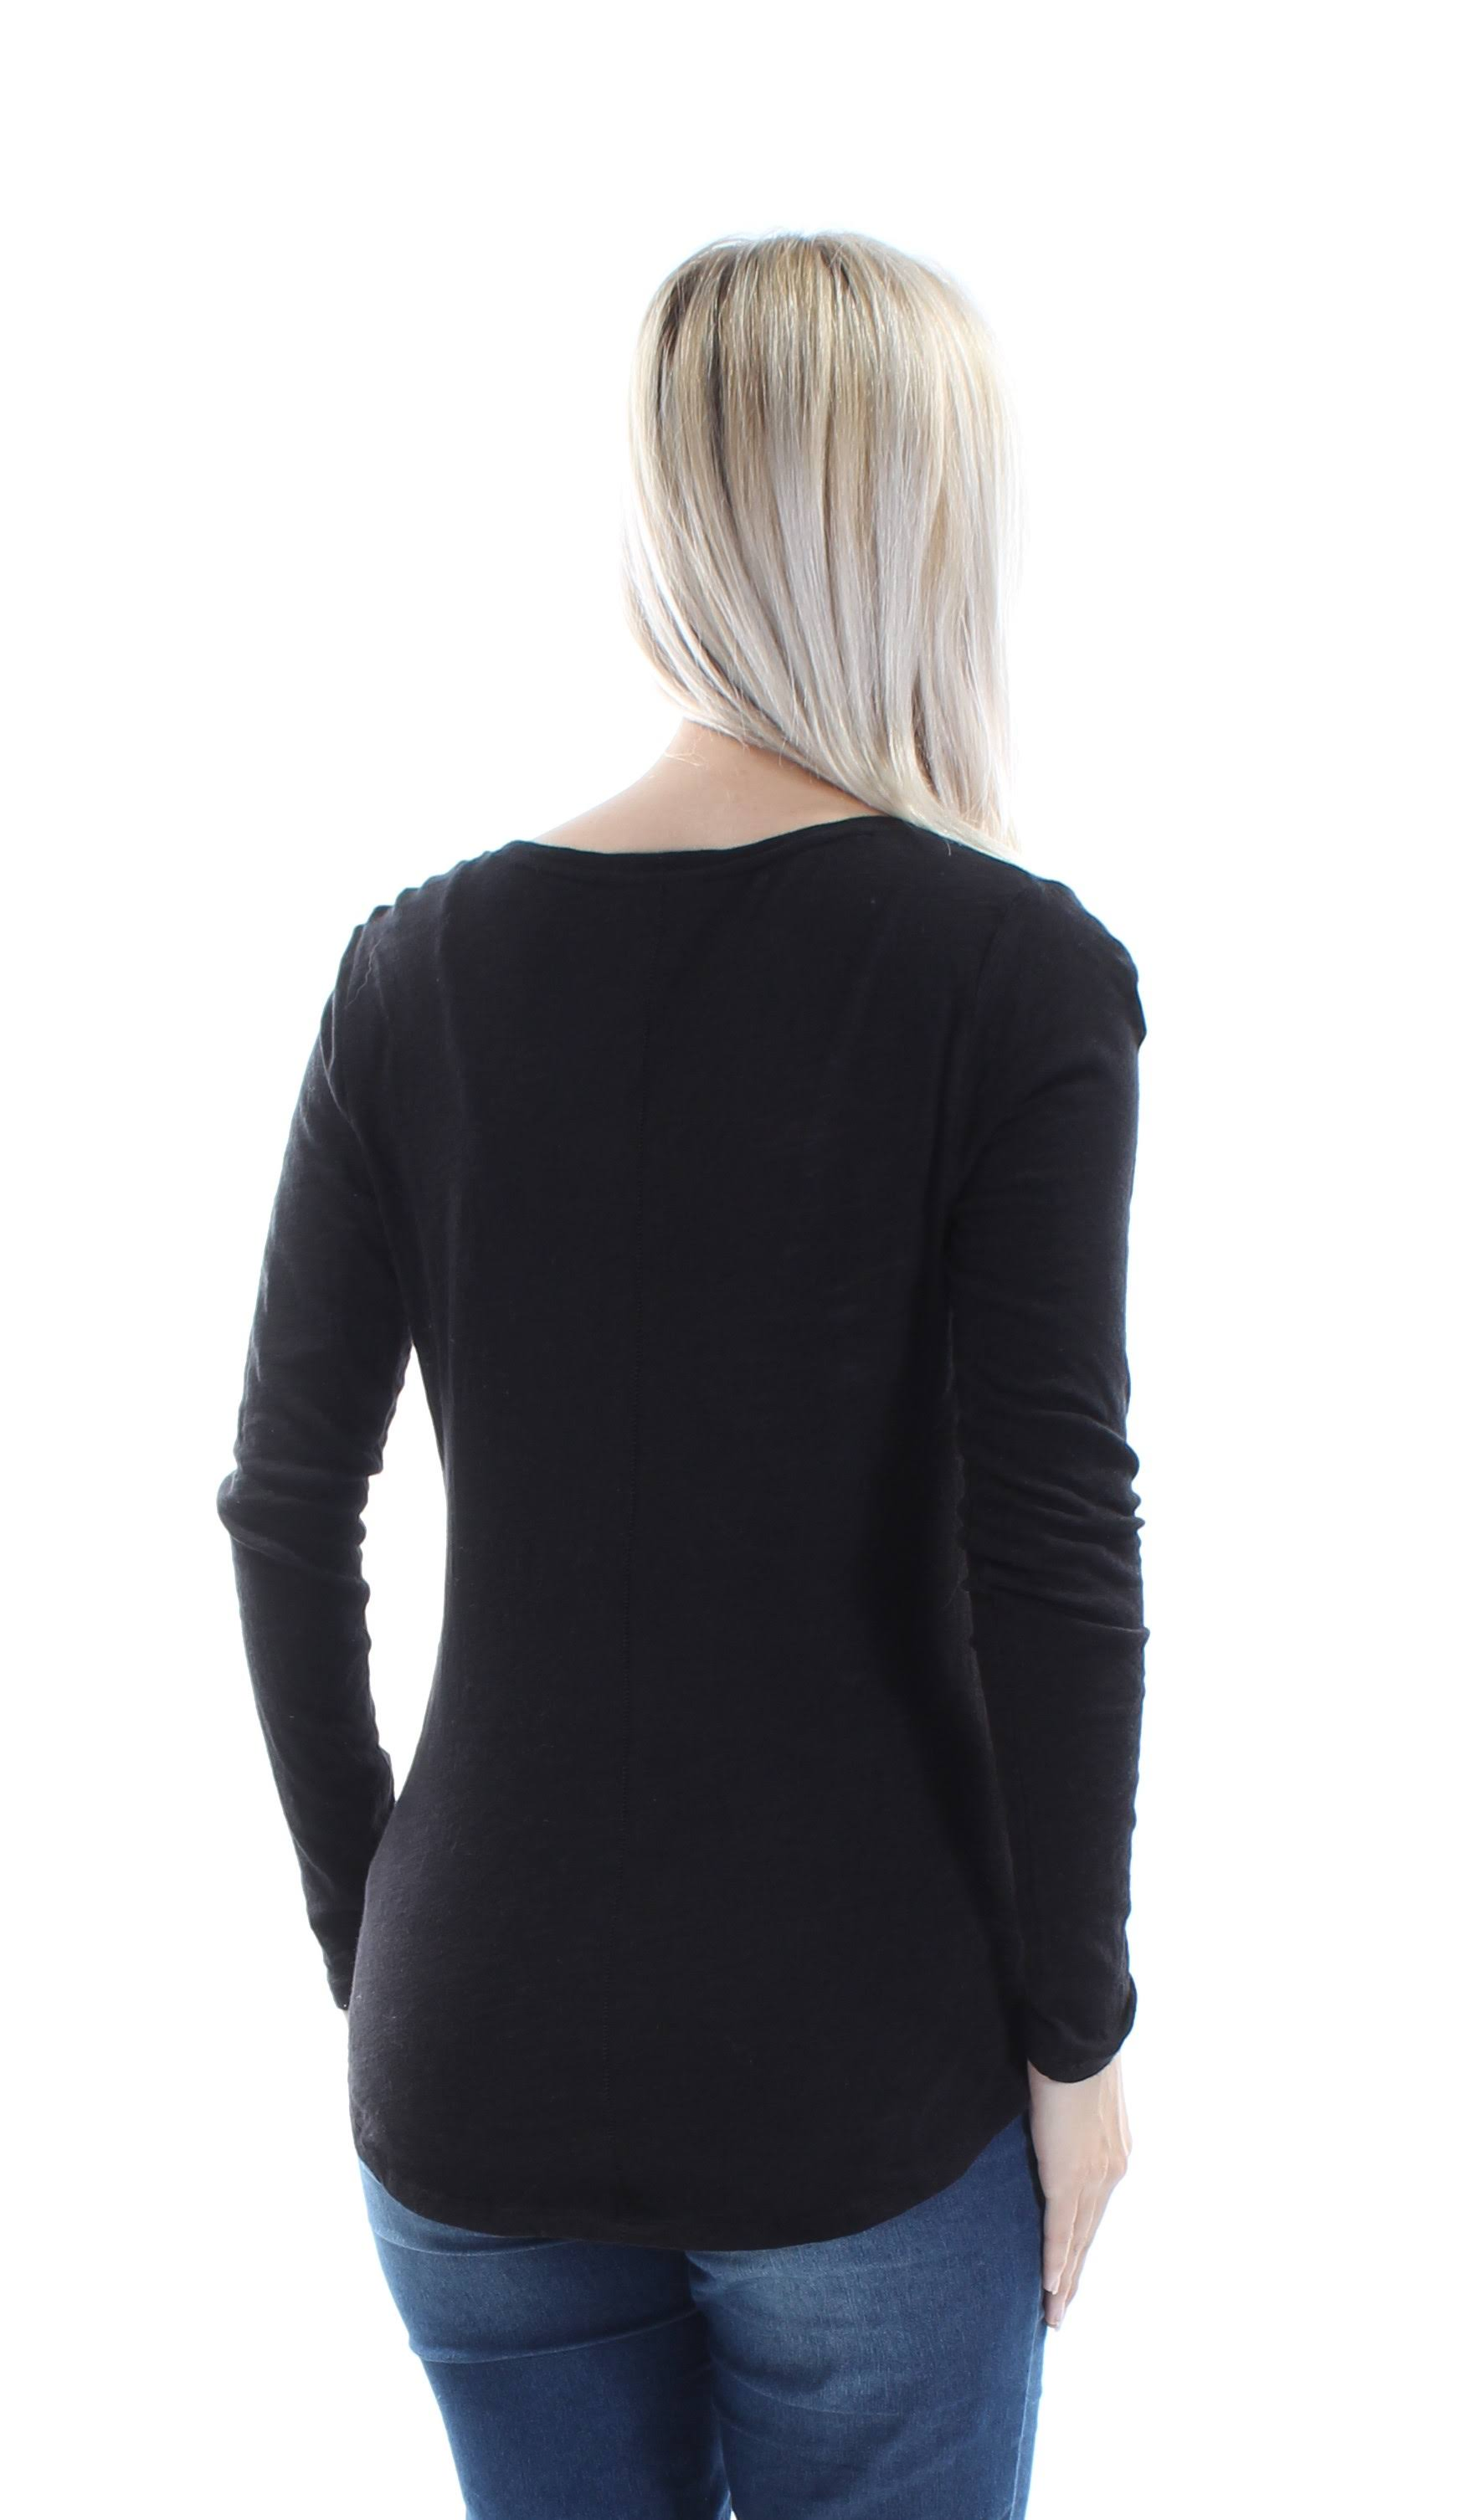 Jewel Jules 1406 24 Larga Maison Top Casual Neck Manga Black B Xs Womens dtwXdxS